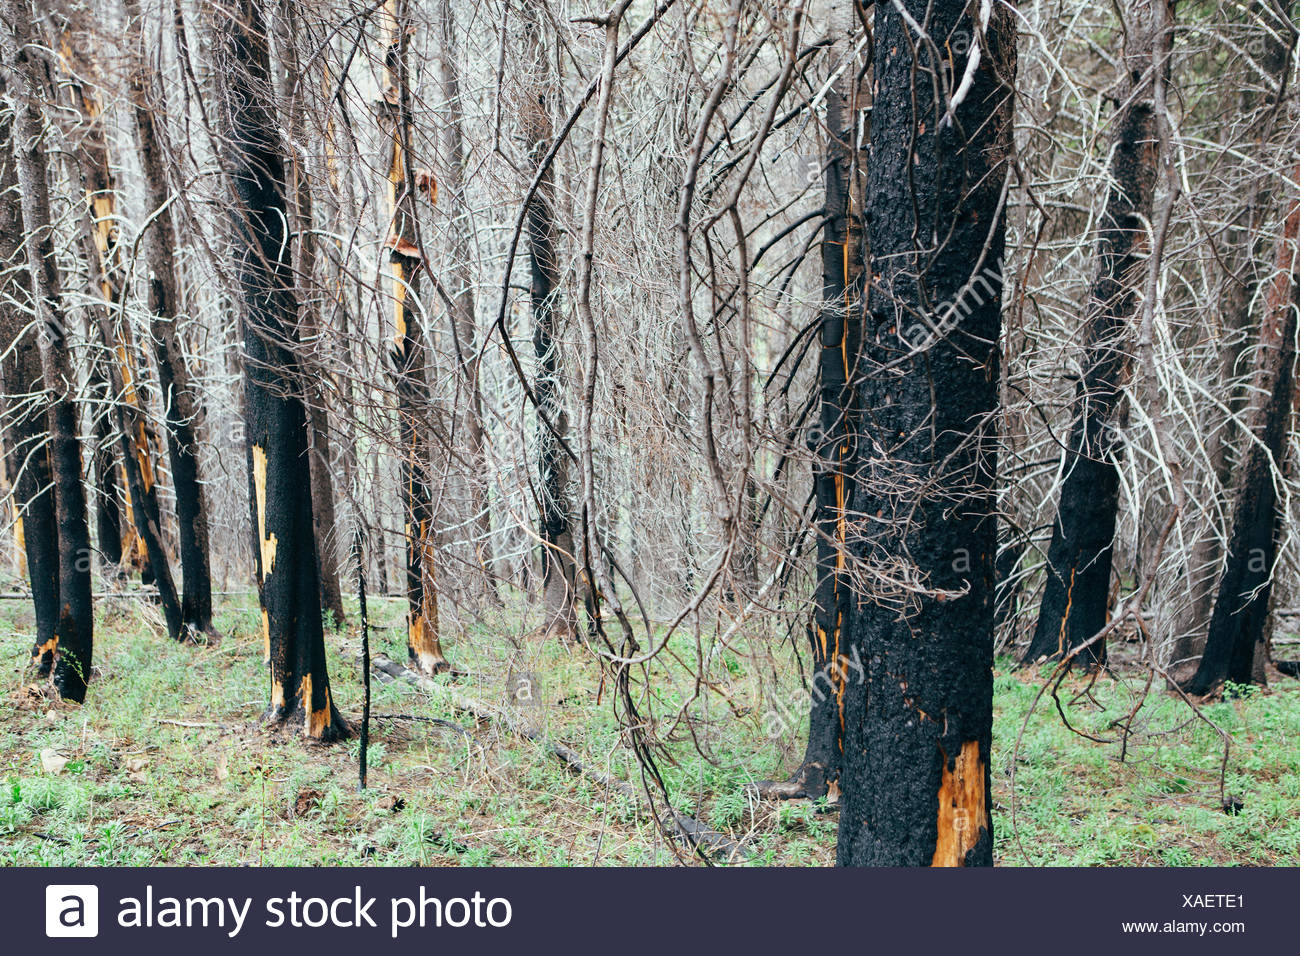 Recovering forest after extensive fire damage, near Wenatchee National Forest in Washington state. - Stock Image